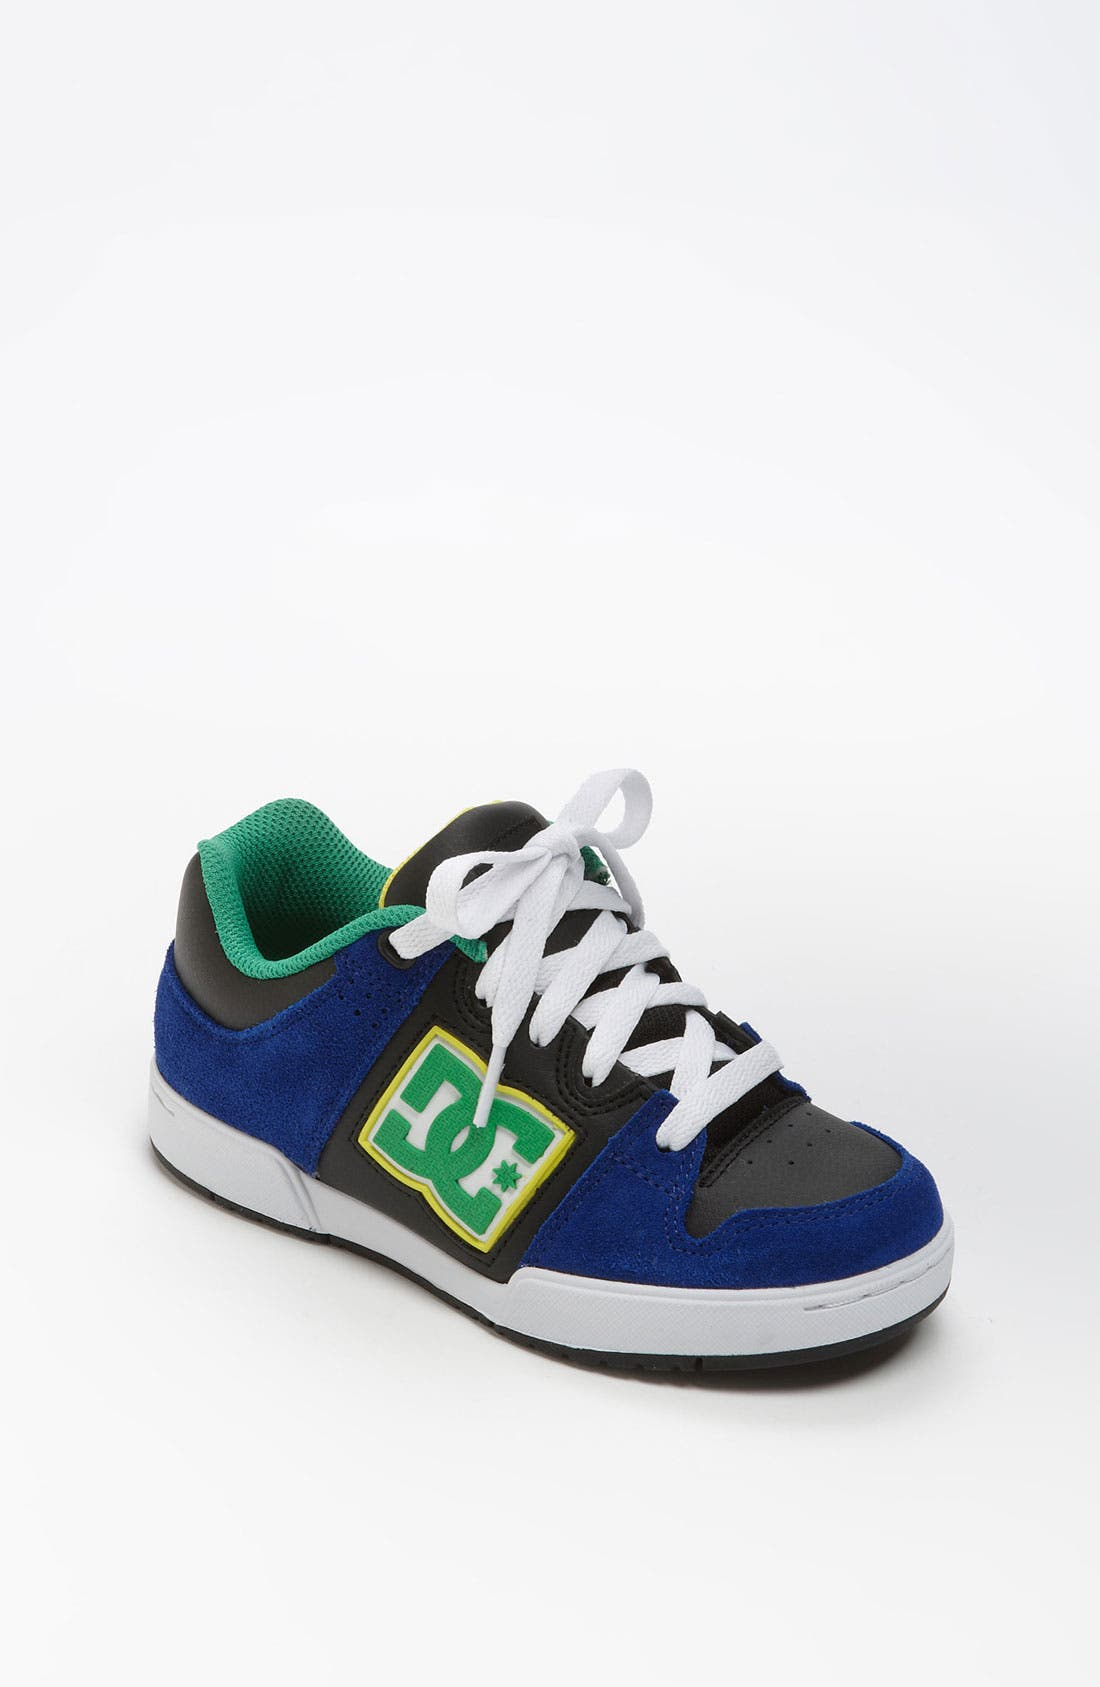 Main Image - DC Shoes 'Turbo 2' Sneaker (Toddler, Little Kid & Big Kid)